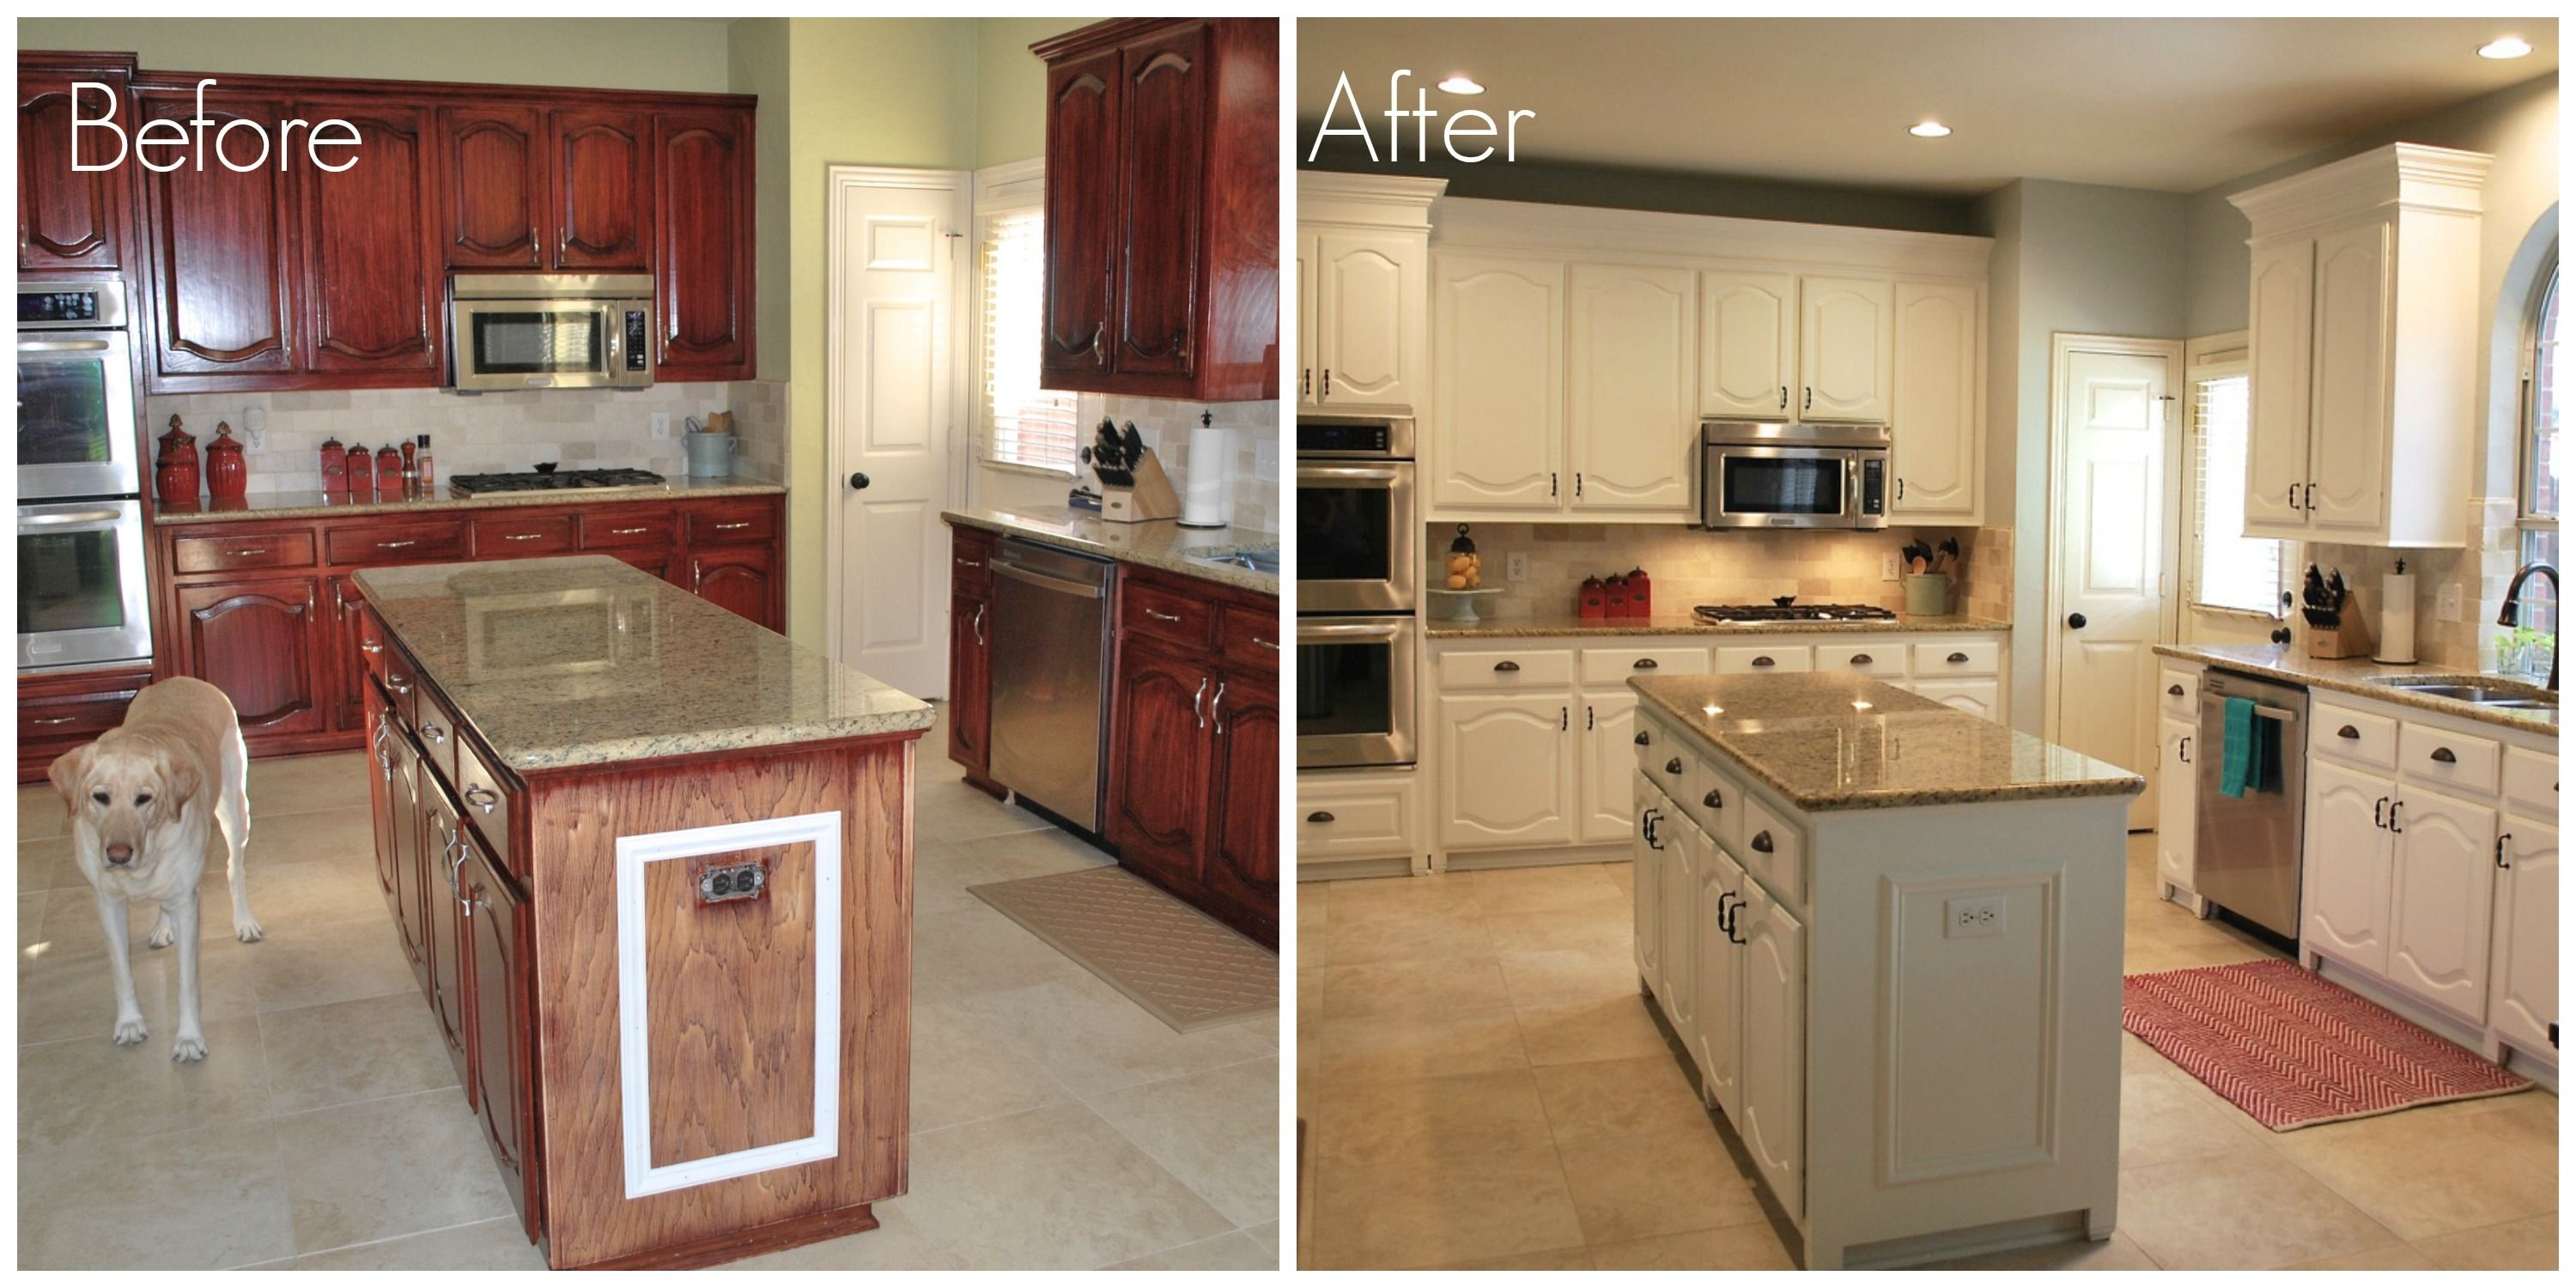 paint kitchen cabinets before and afterBefore  After  Kitchen remodel  Pinterest  Painting kitchen